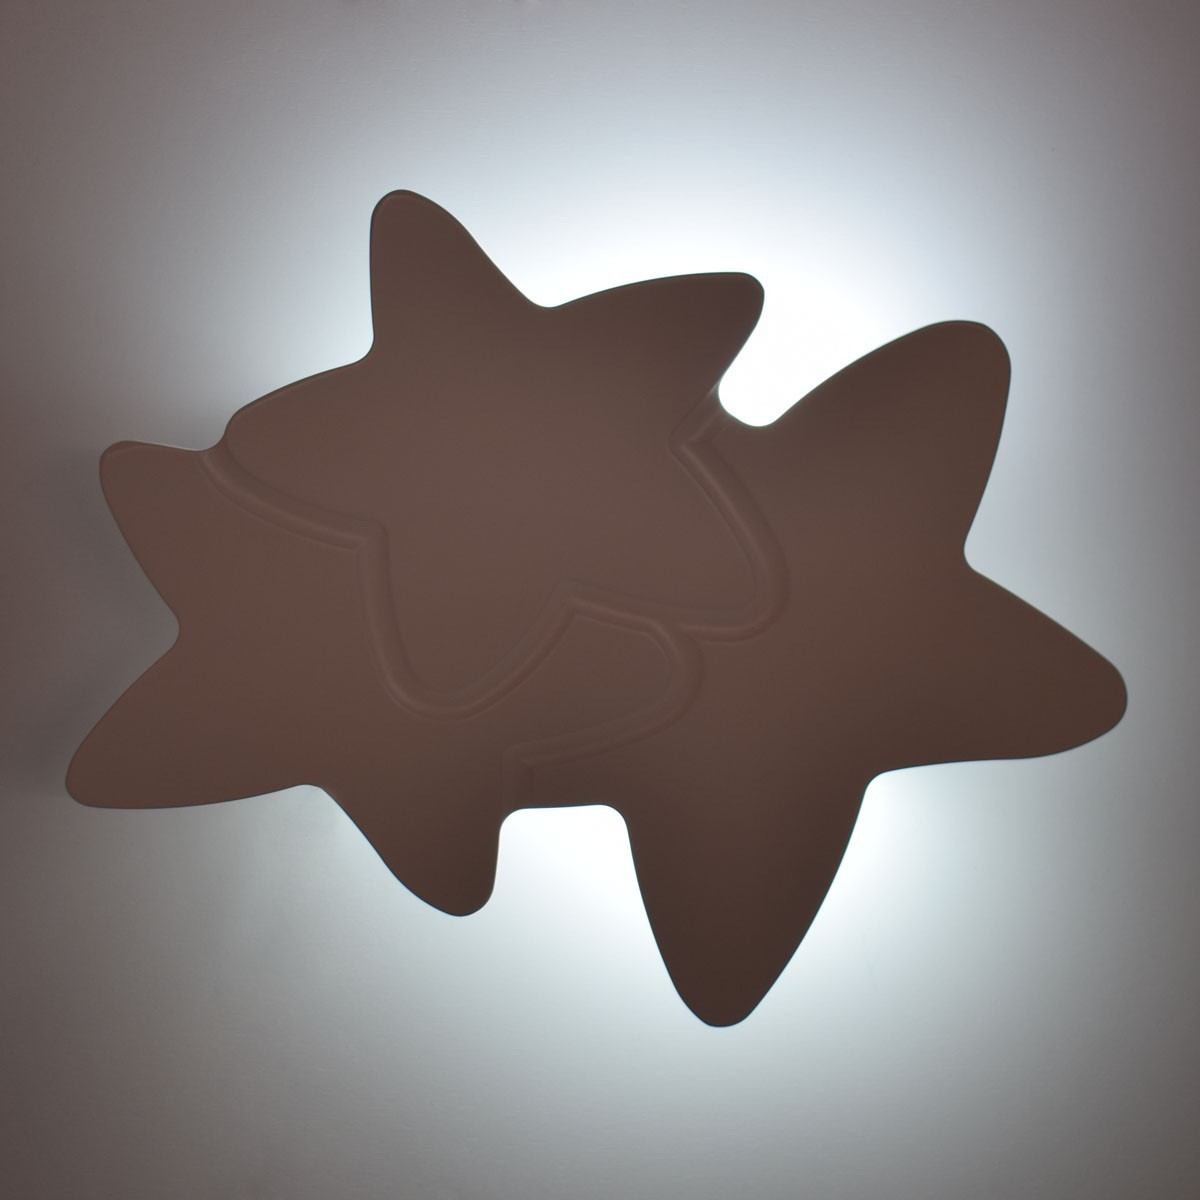 Lampara de pared infantil estrellas env o 24h gratis for Lamparas pared infantiles